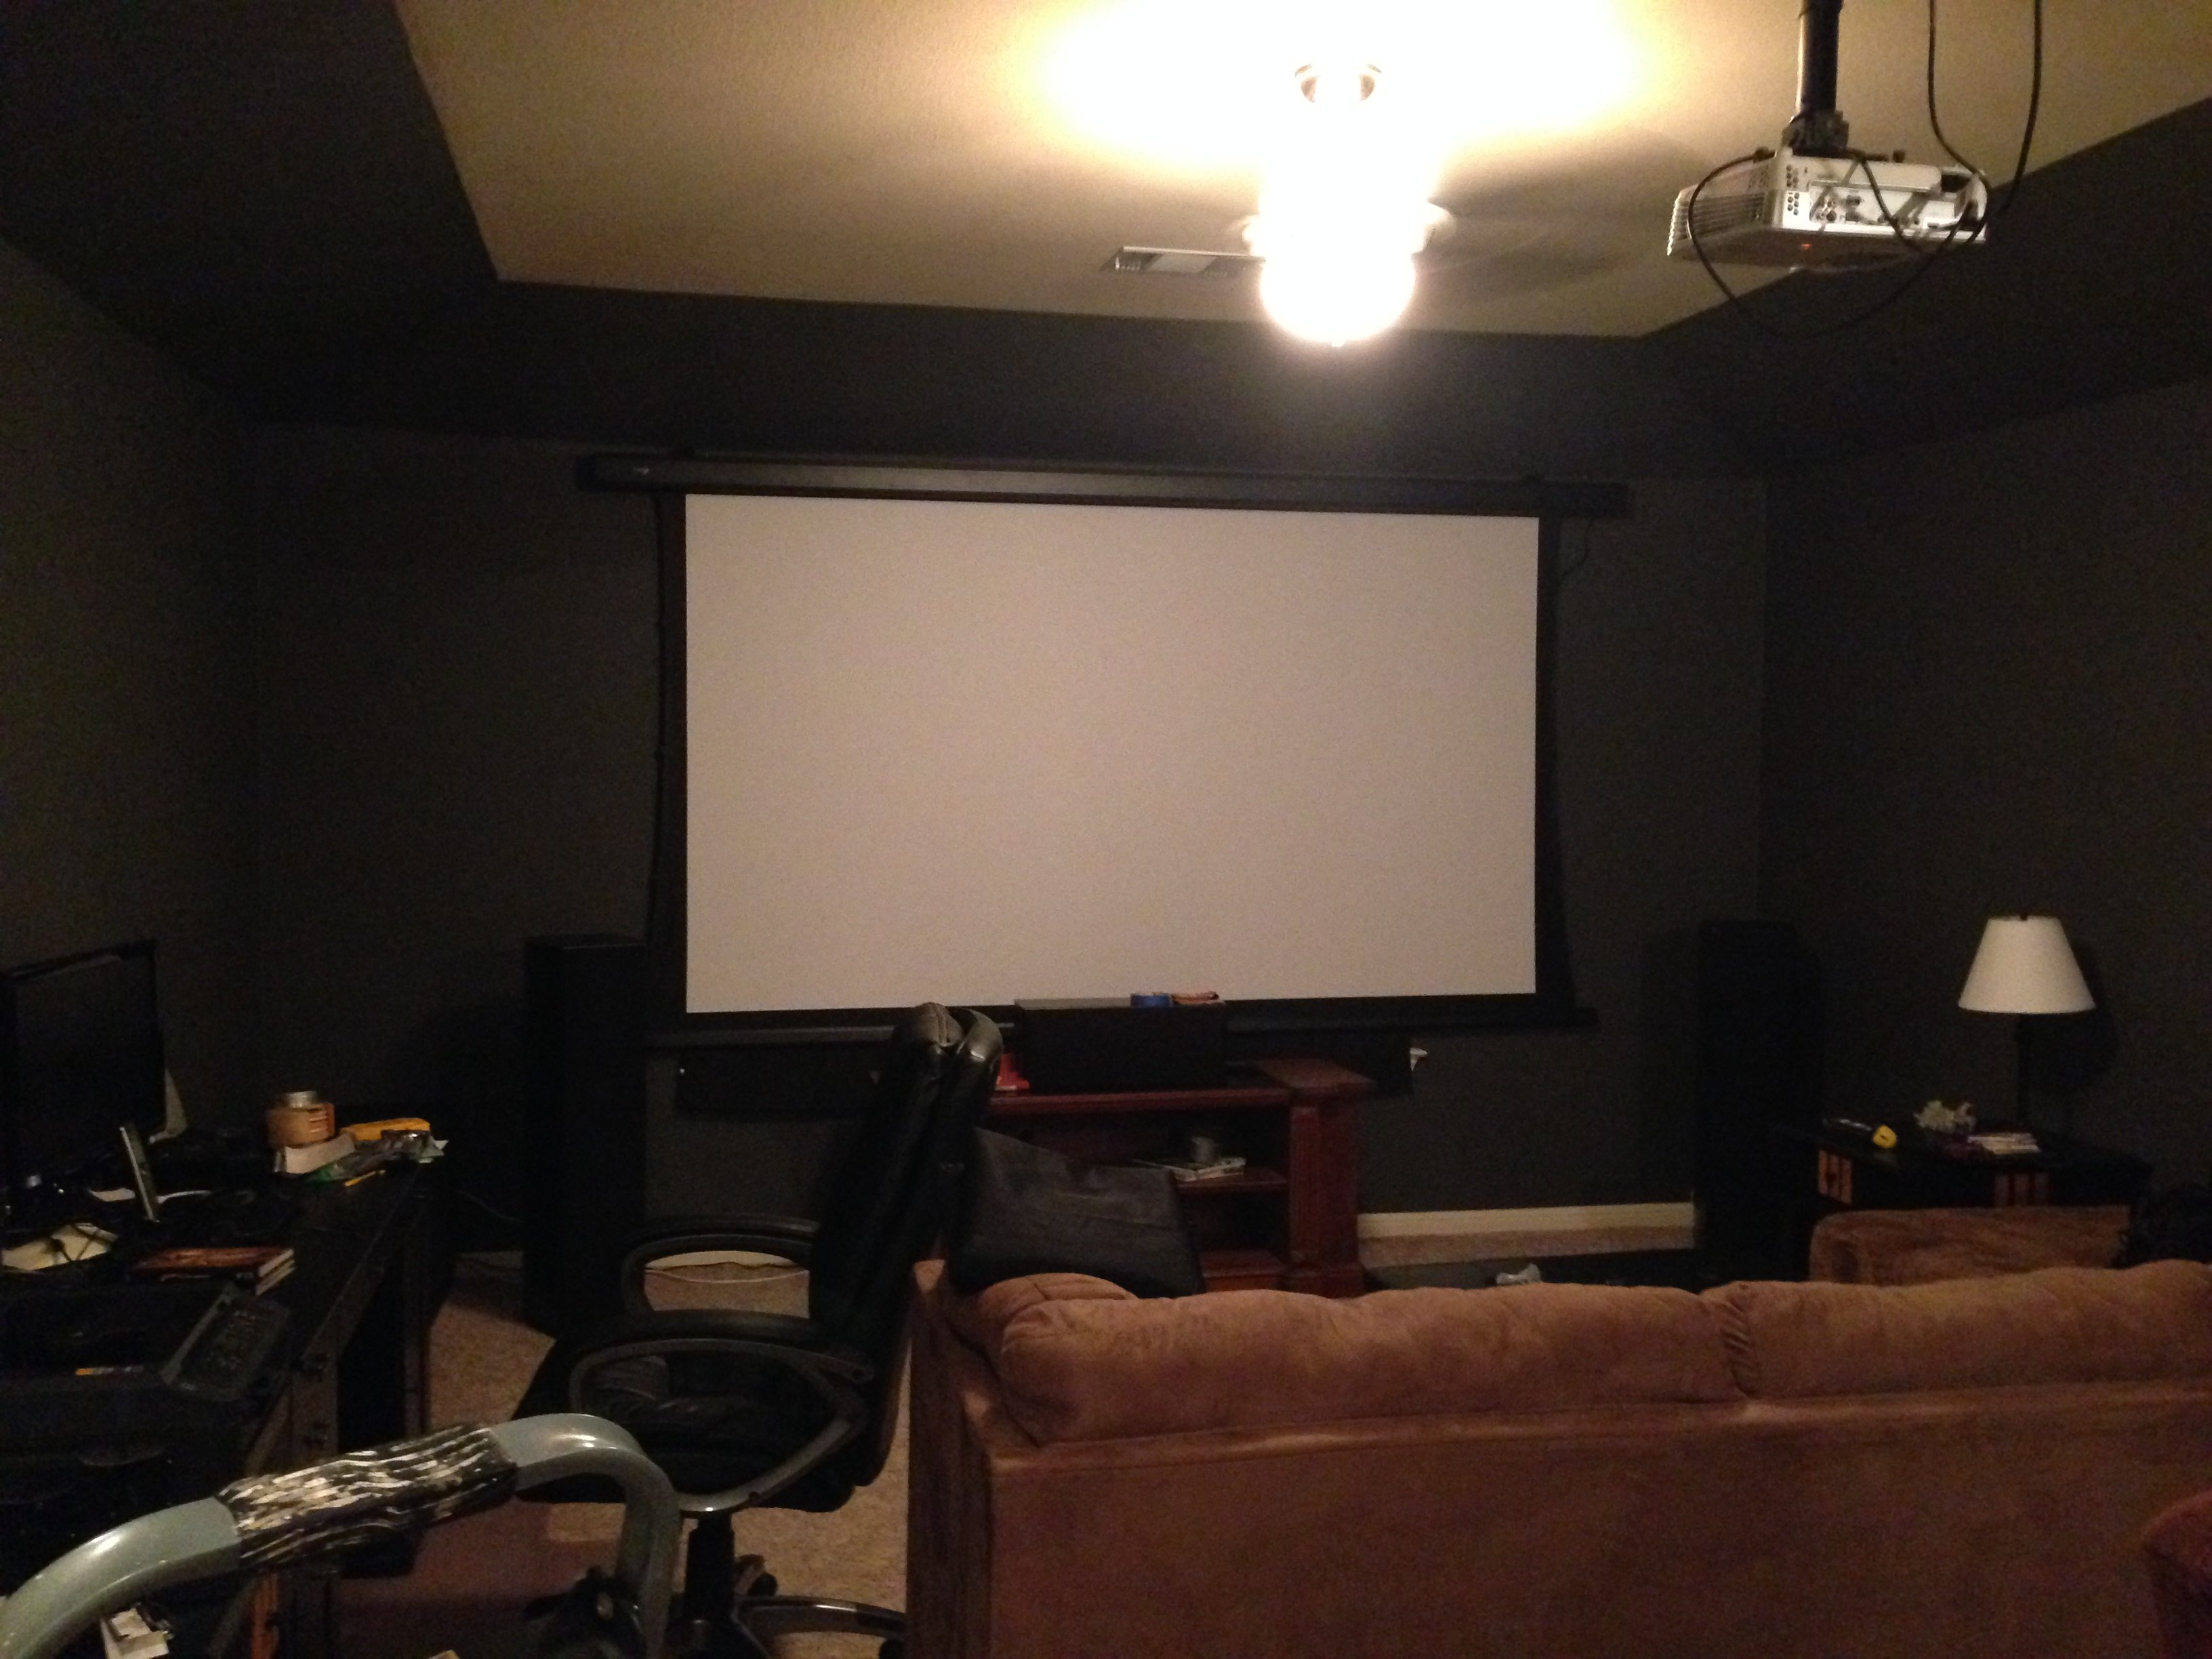 Options To Block Light From Window Avs Forum Home Theater